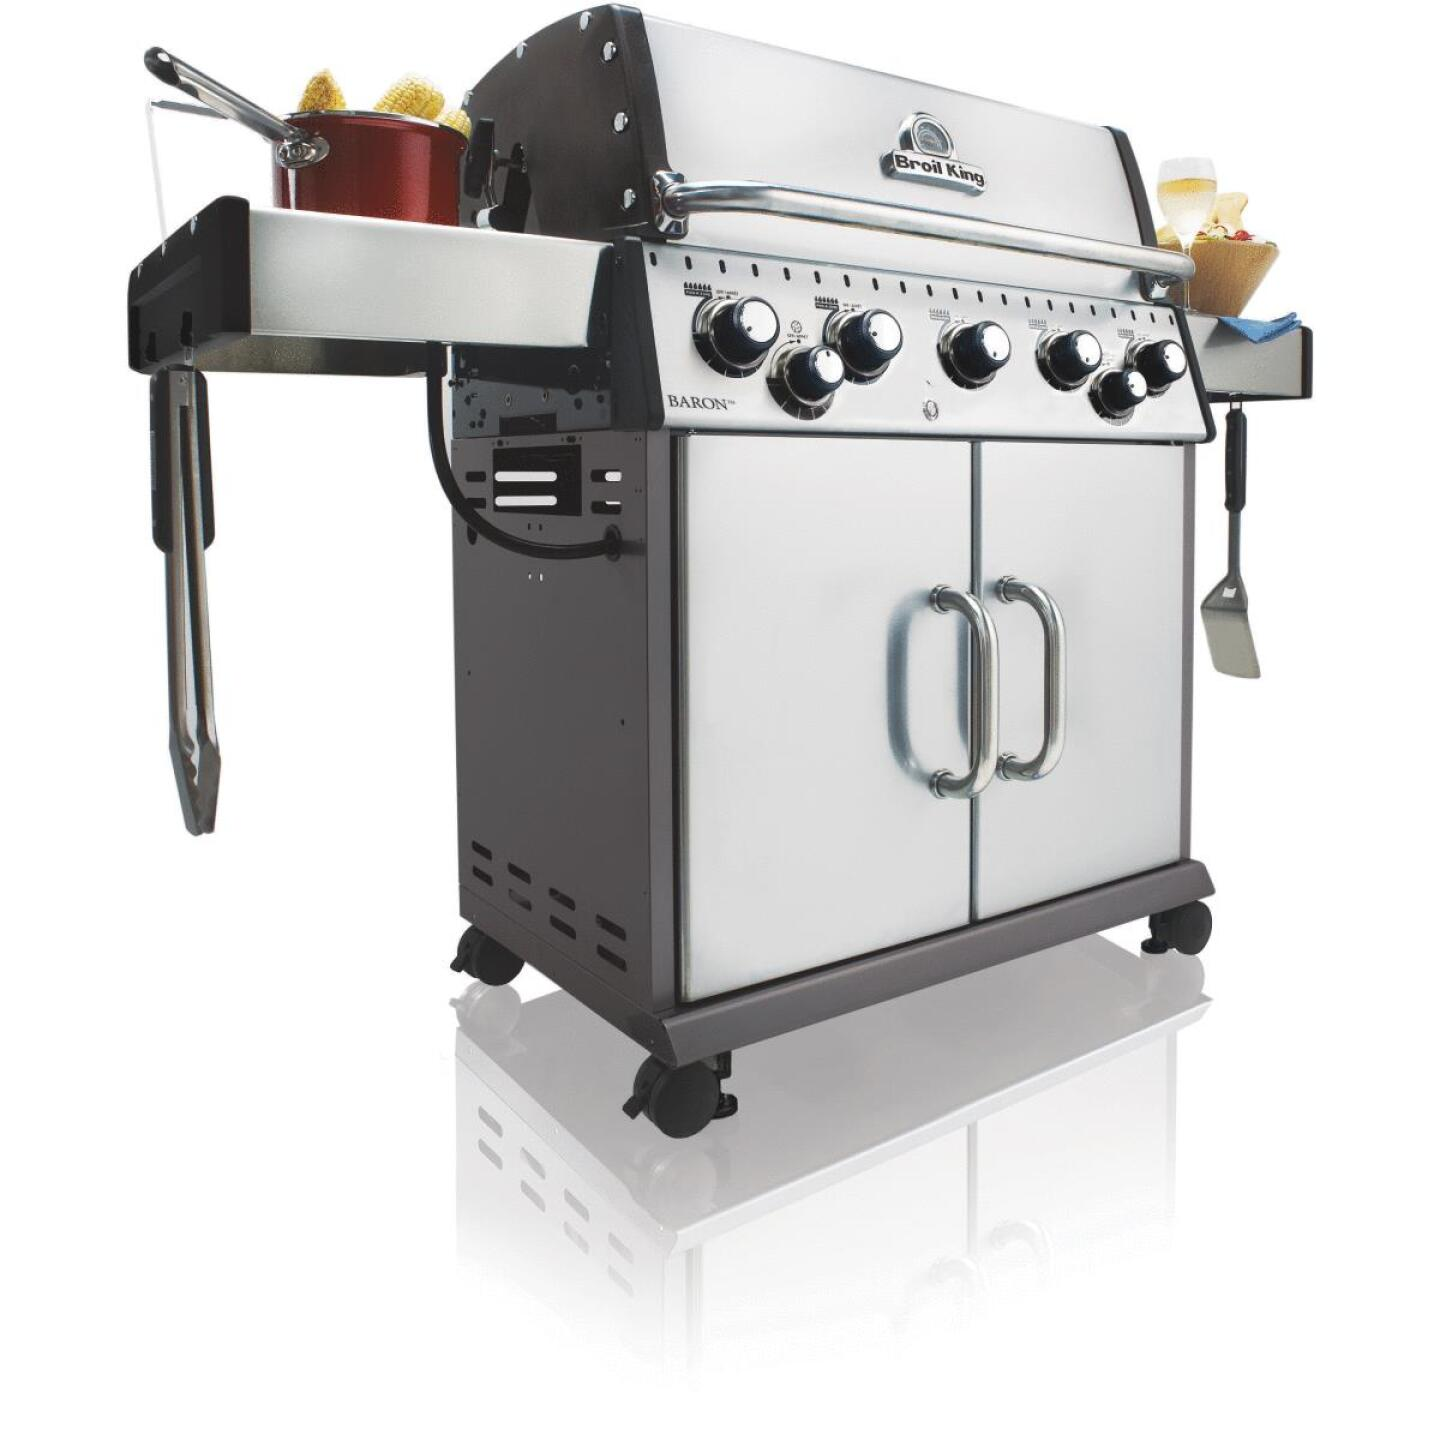 Broil King Baron S590 5-Burner Stainless Steel 50,000-BTU LP Gas Grill with 10,000-BTU Side Burner Image 4